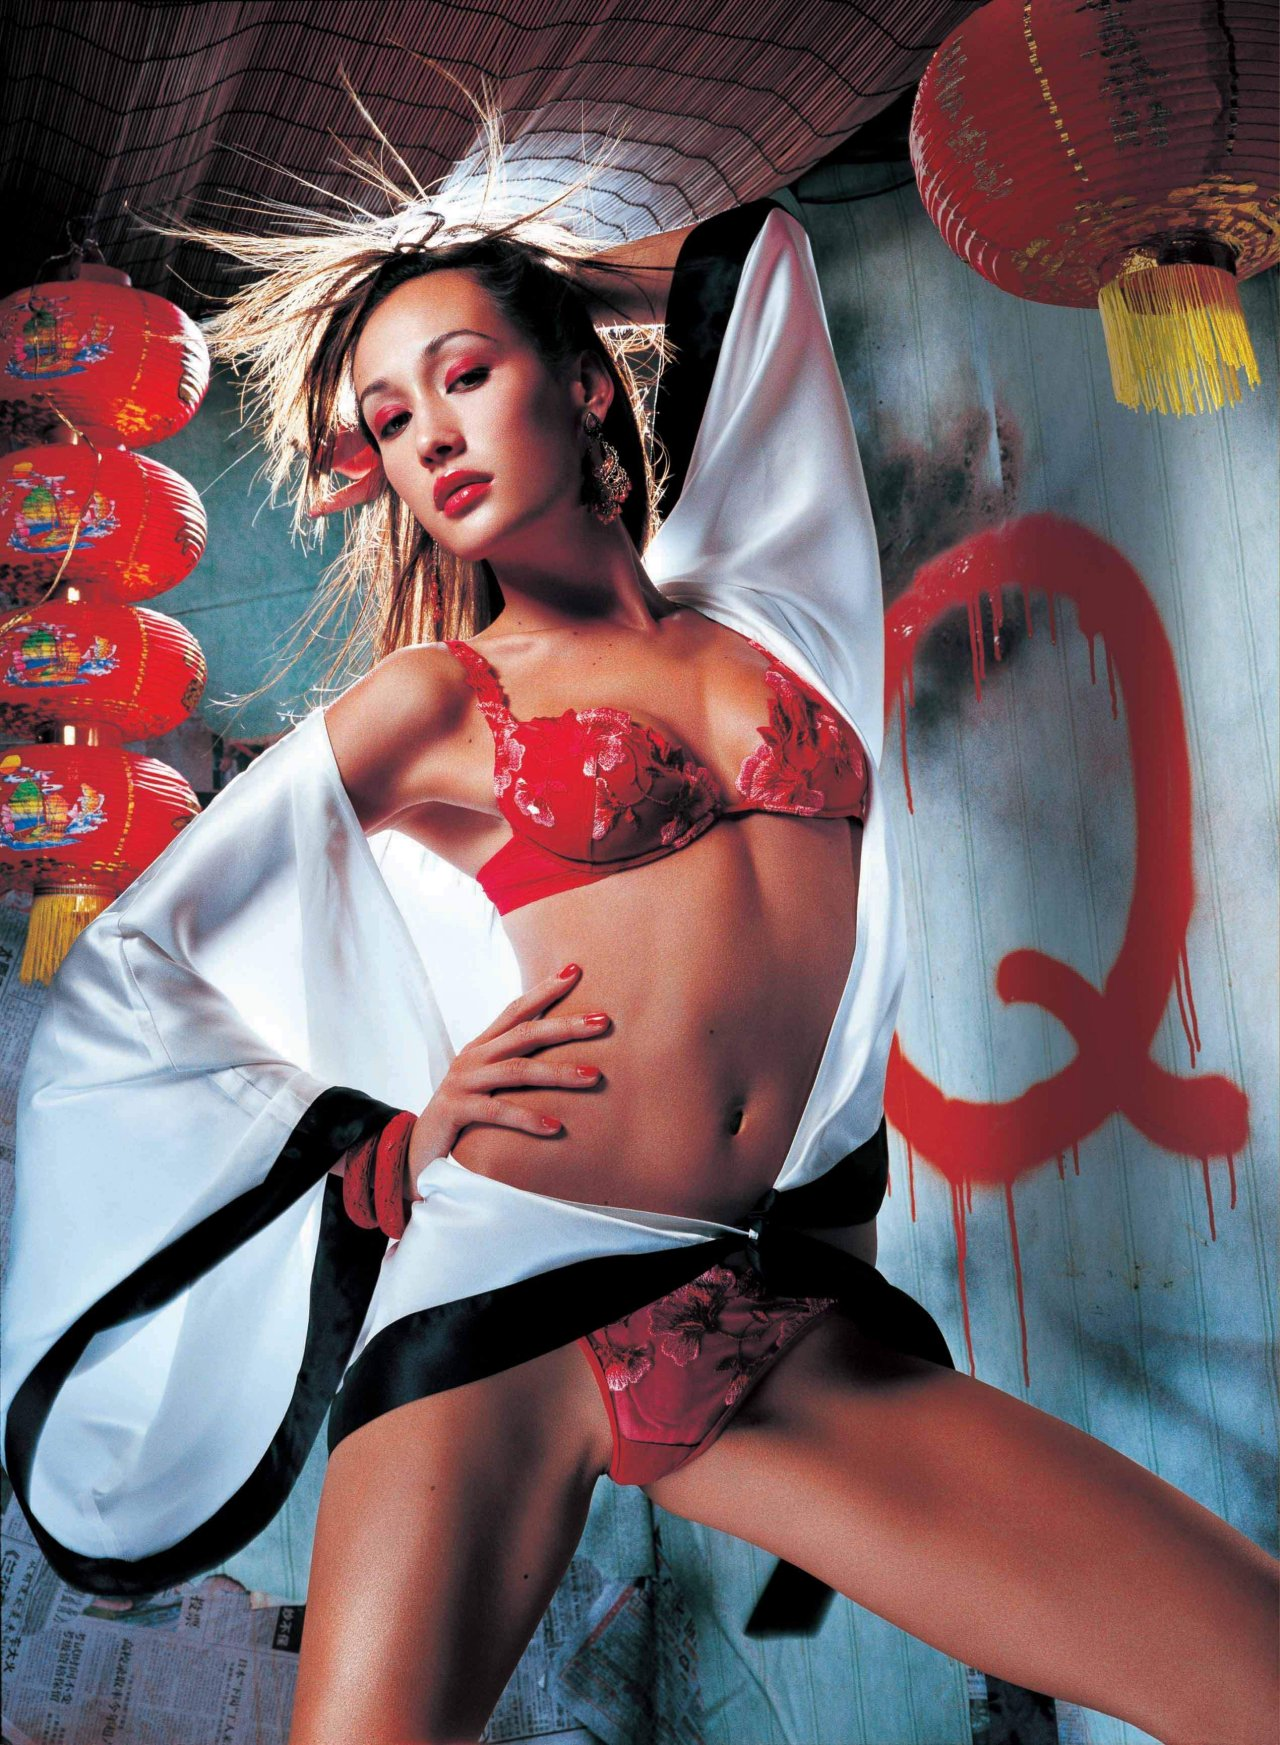 Awesome Animated Wallpapers 38 Hot Pictures Of Maggie Q Will Get You All Sweating